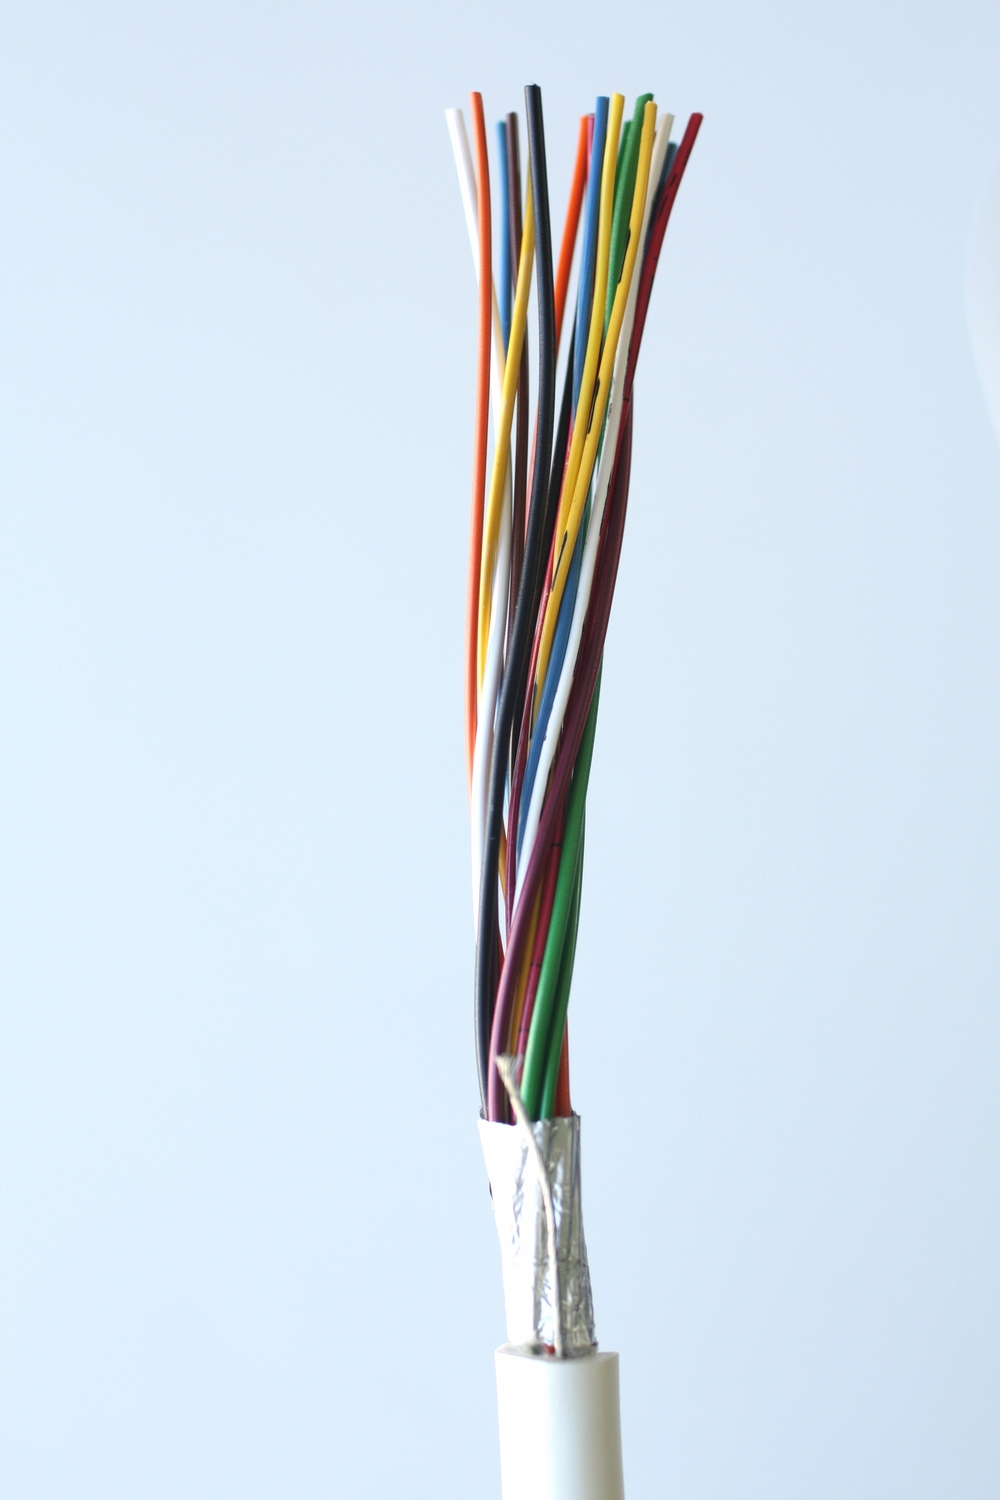 Meyer Wire Amp Cable Co